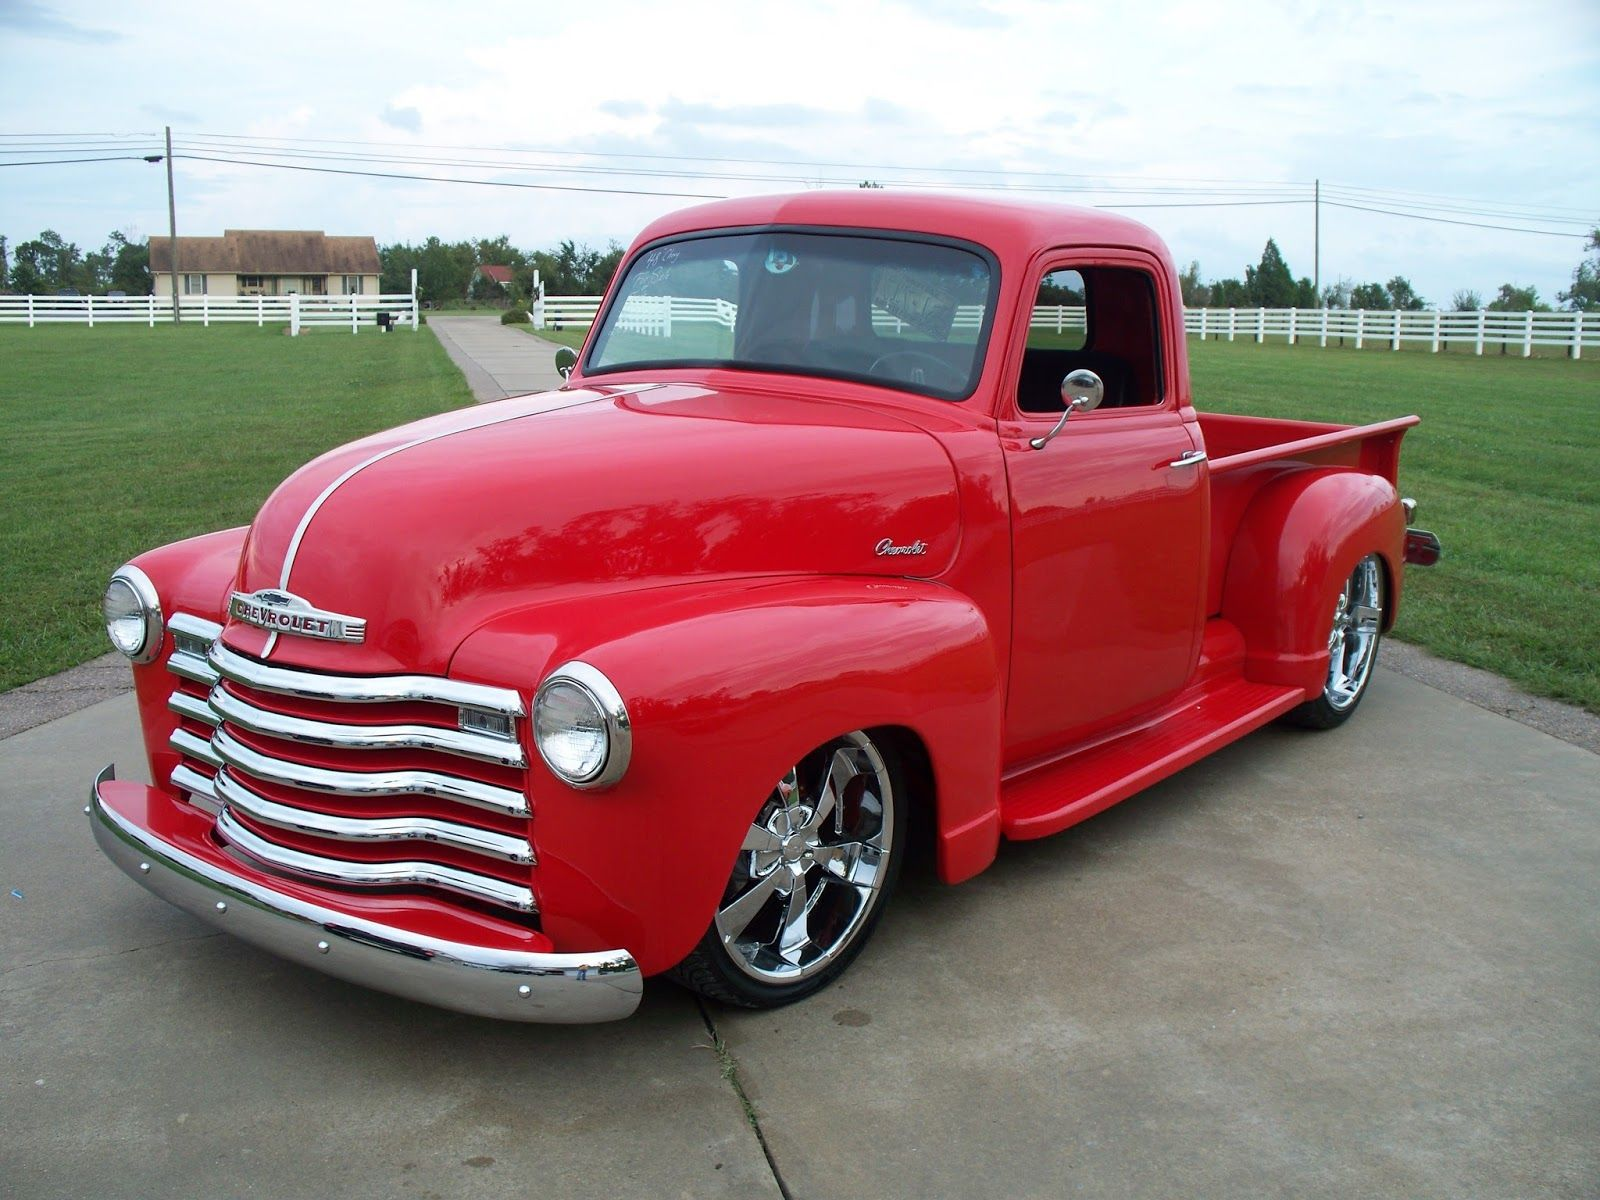 Pin by juan barba on PICK UP CLASICAS | Pinterest | Chevy pickups ...